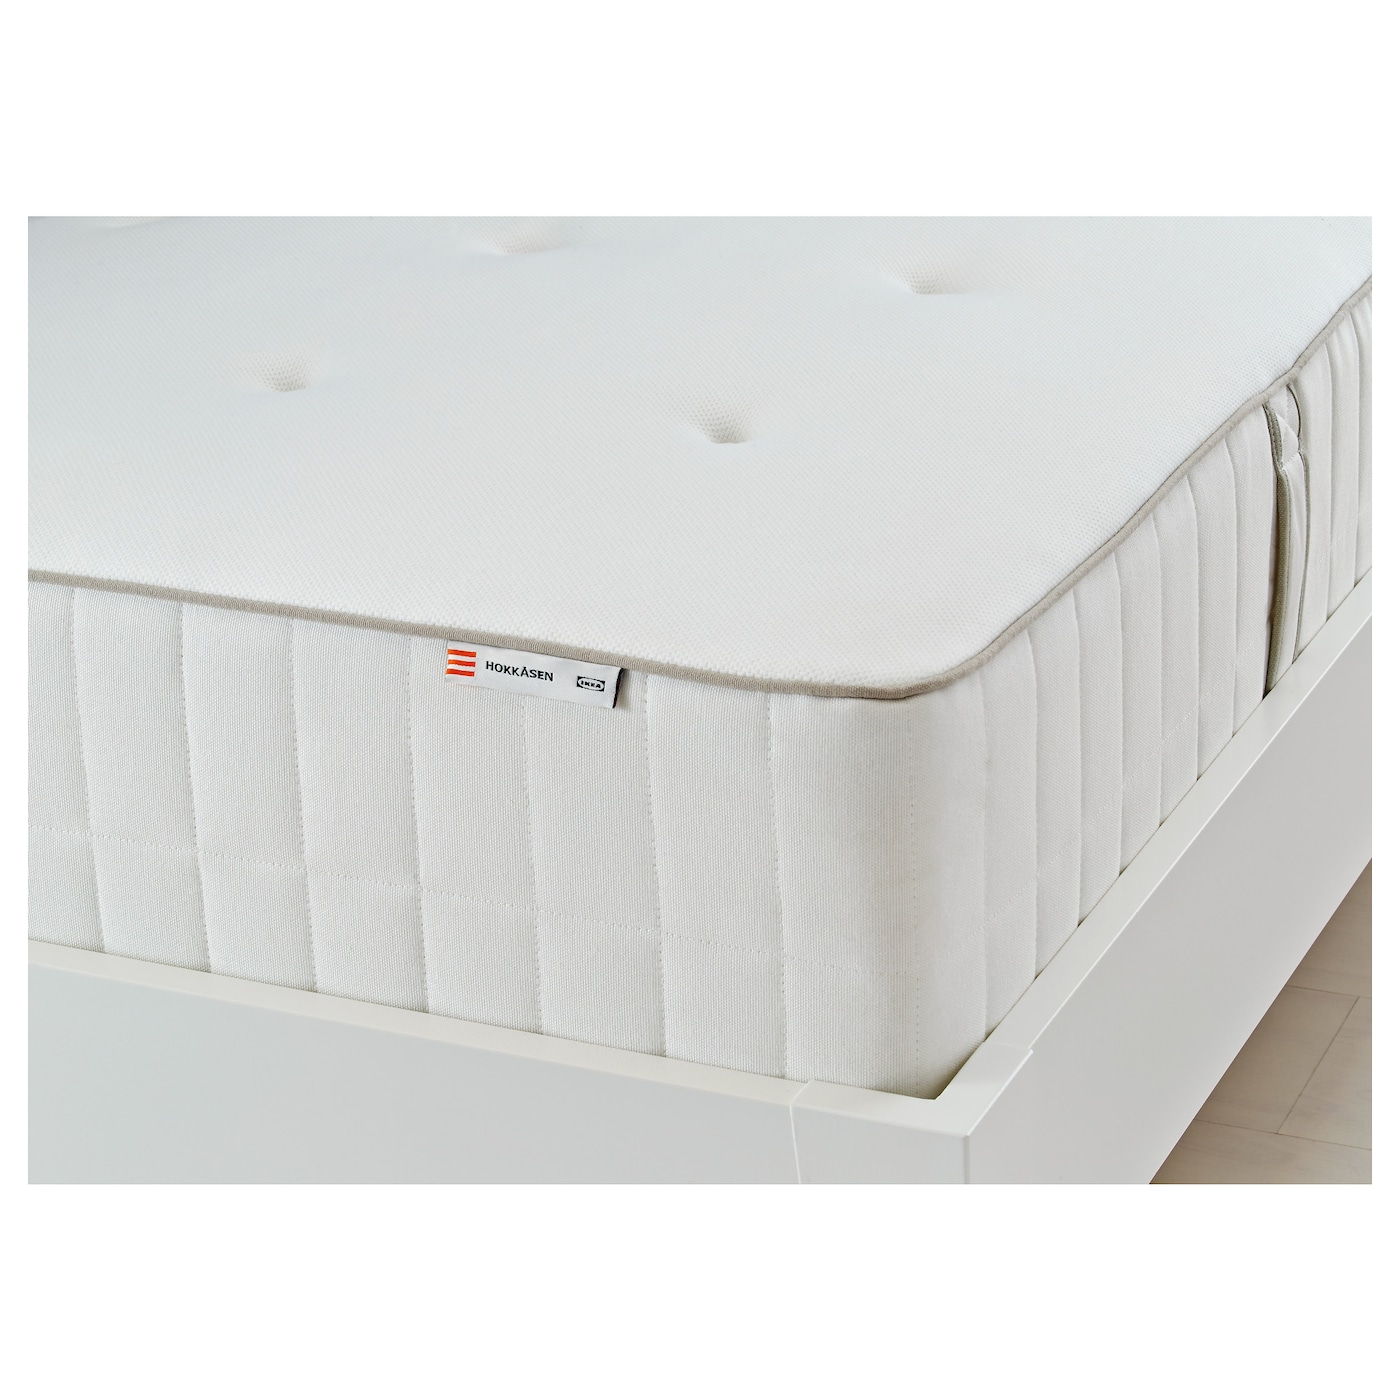 HOKKÅSEN Pocket sprung mattress Firm white Standard Single